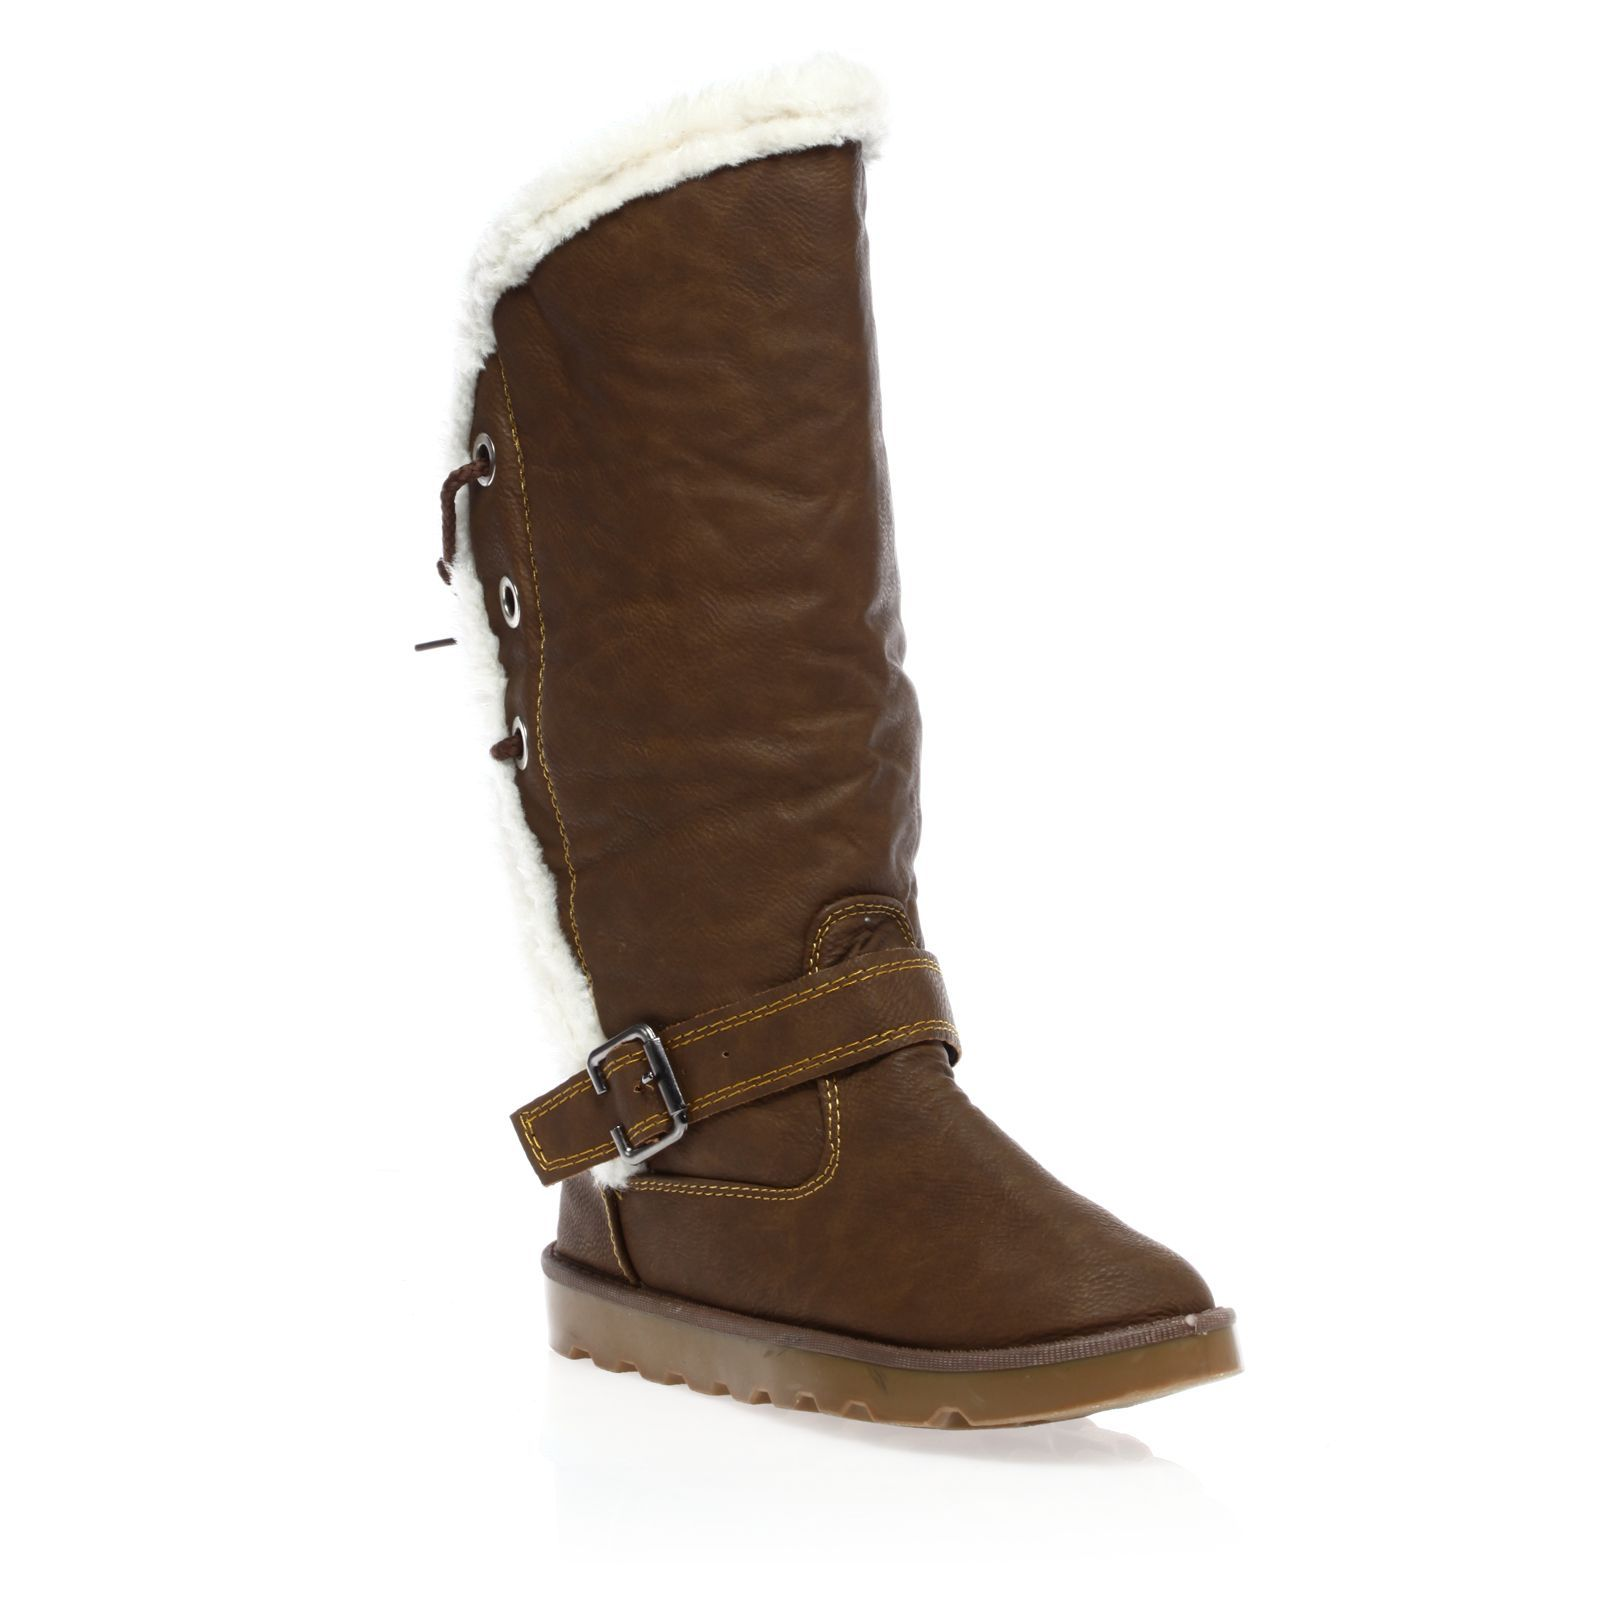 1001 Shoes bottes fourr�es marron clair